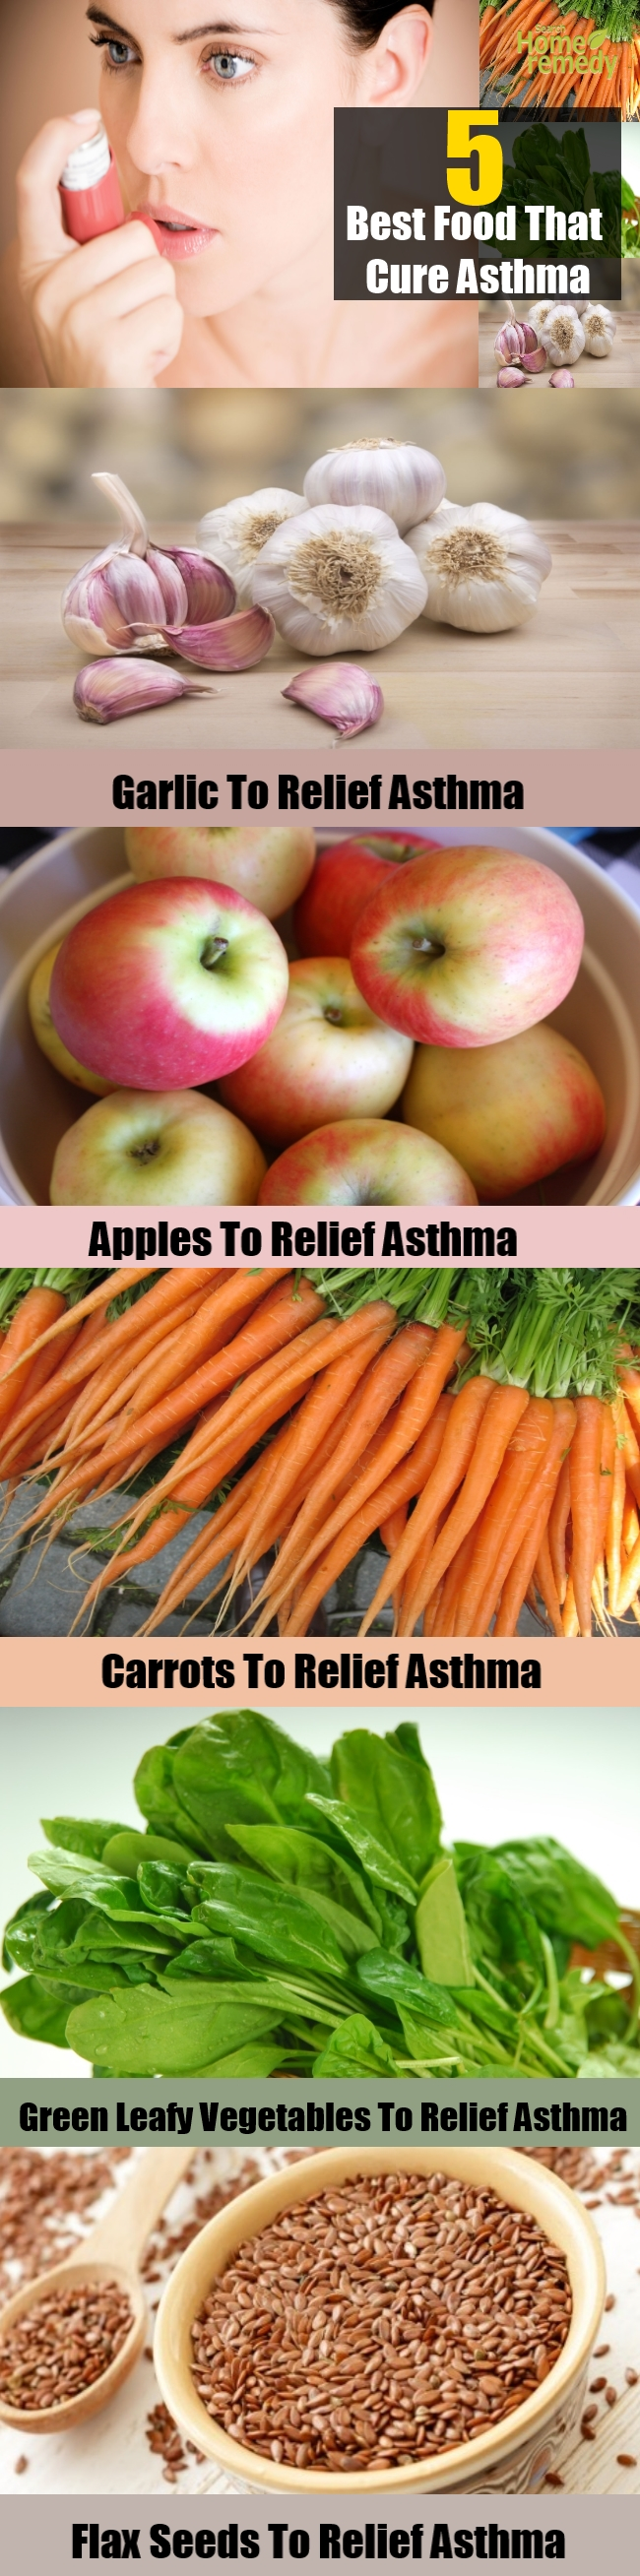 5 Best Food That Cure Asthma